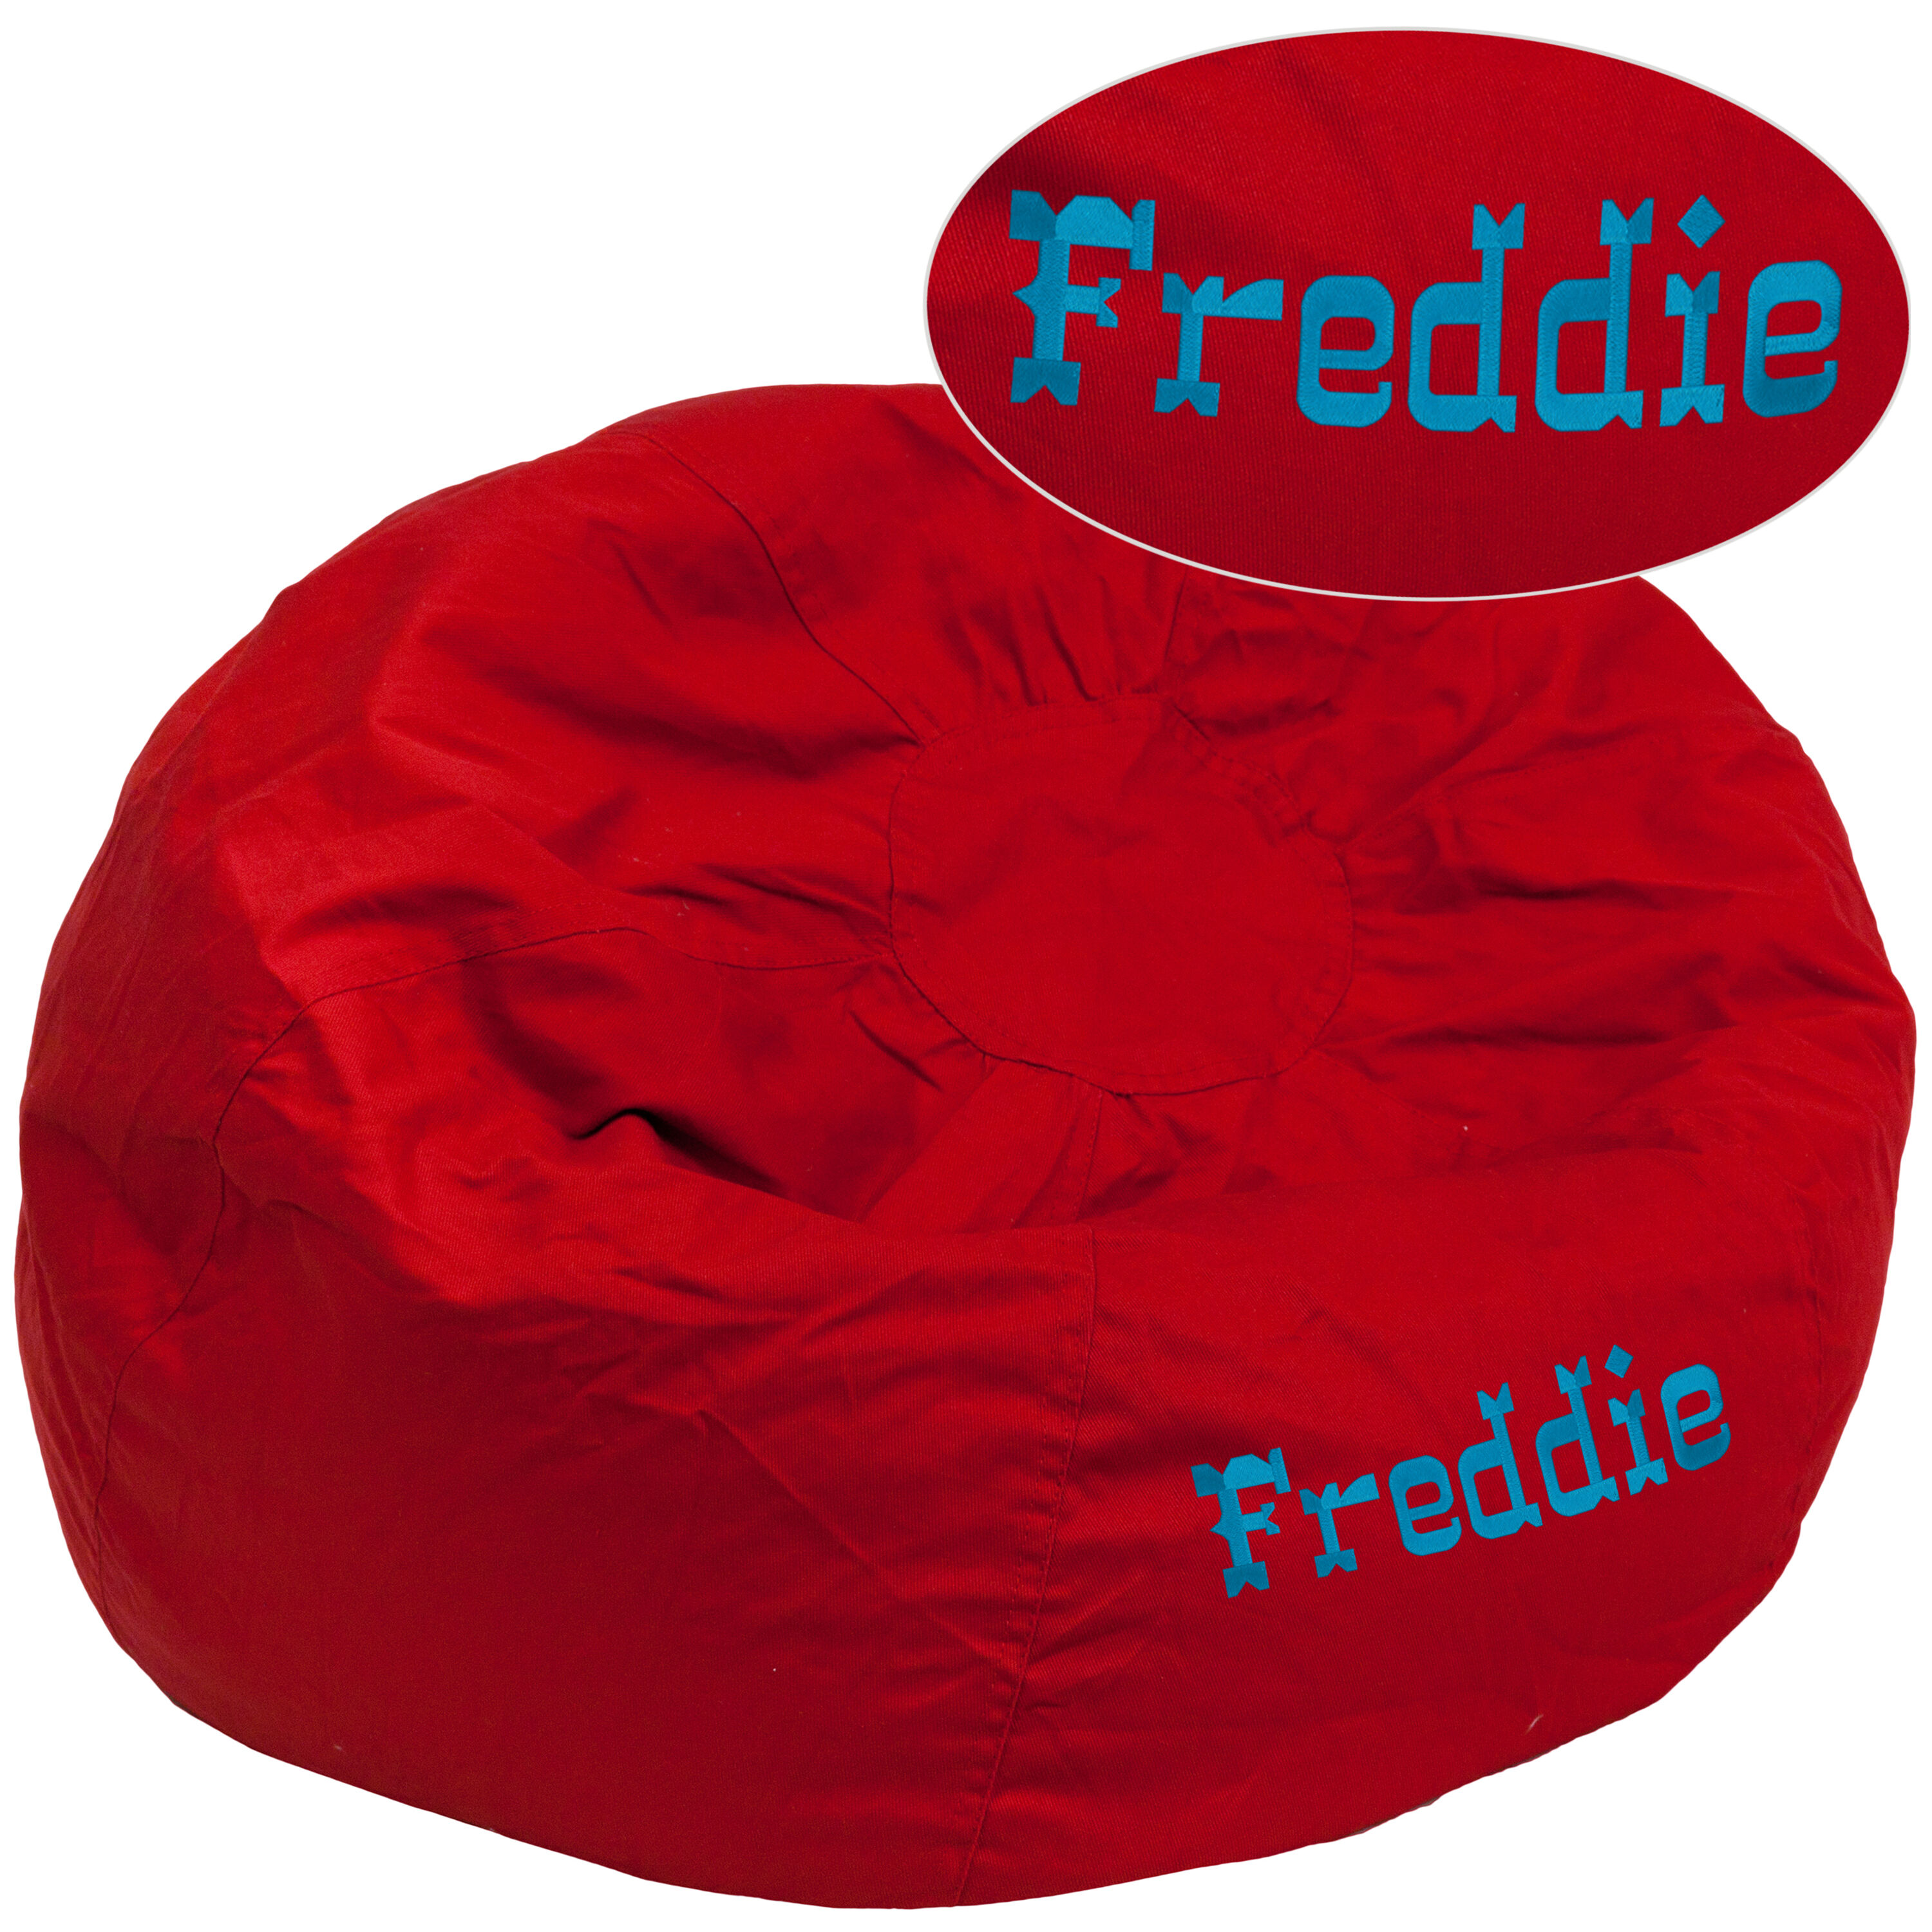 ... Our Personalized Oversized Solid Red Bean Bag Chair Is On Sale Now.